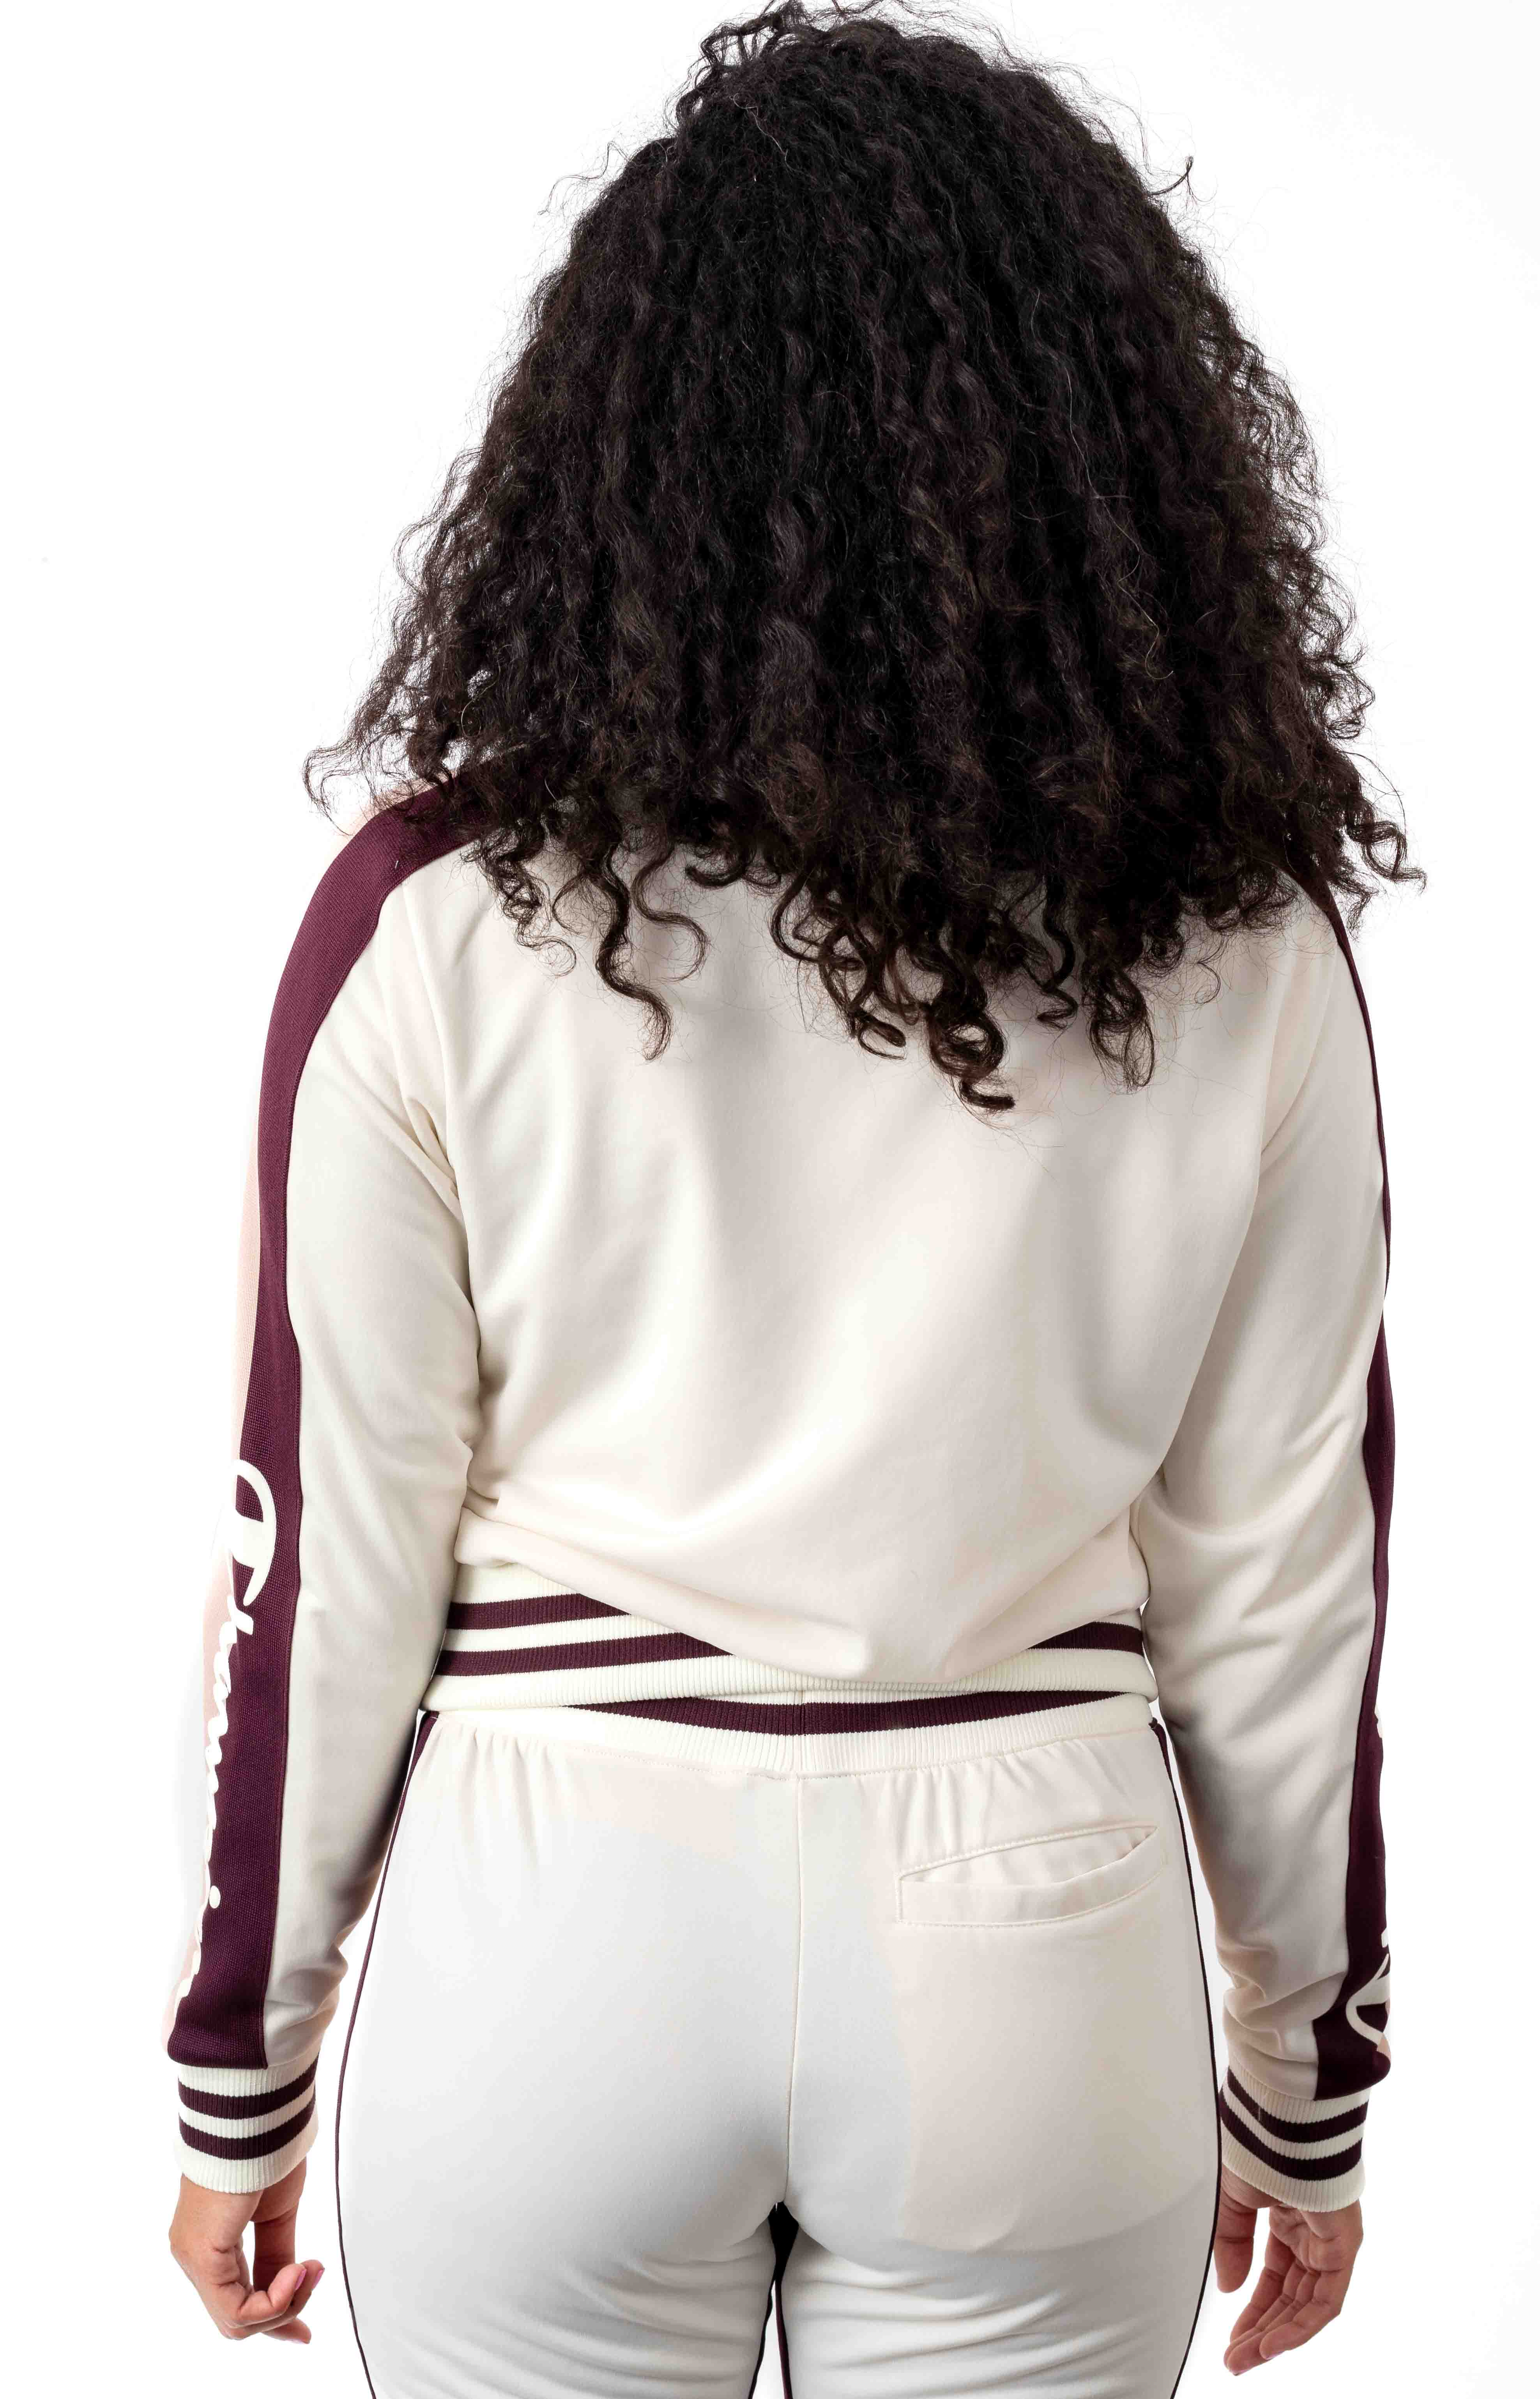 Tricot Track Jacket w/ Champion Taping - Chalk White  3